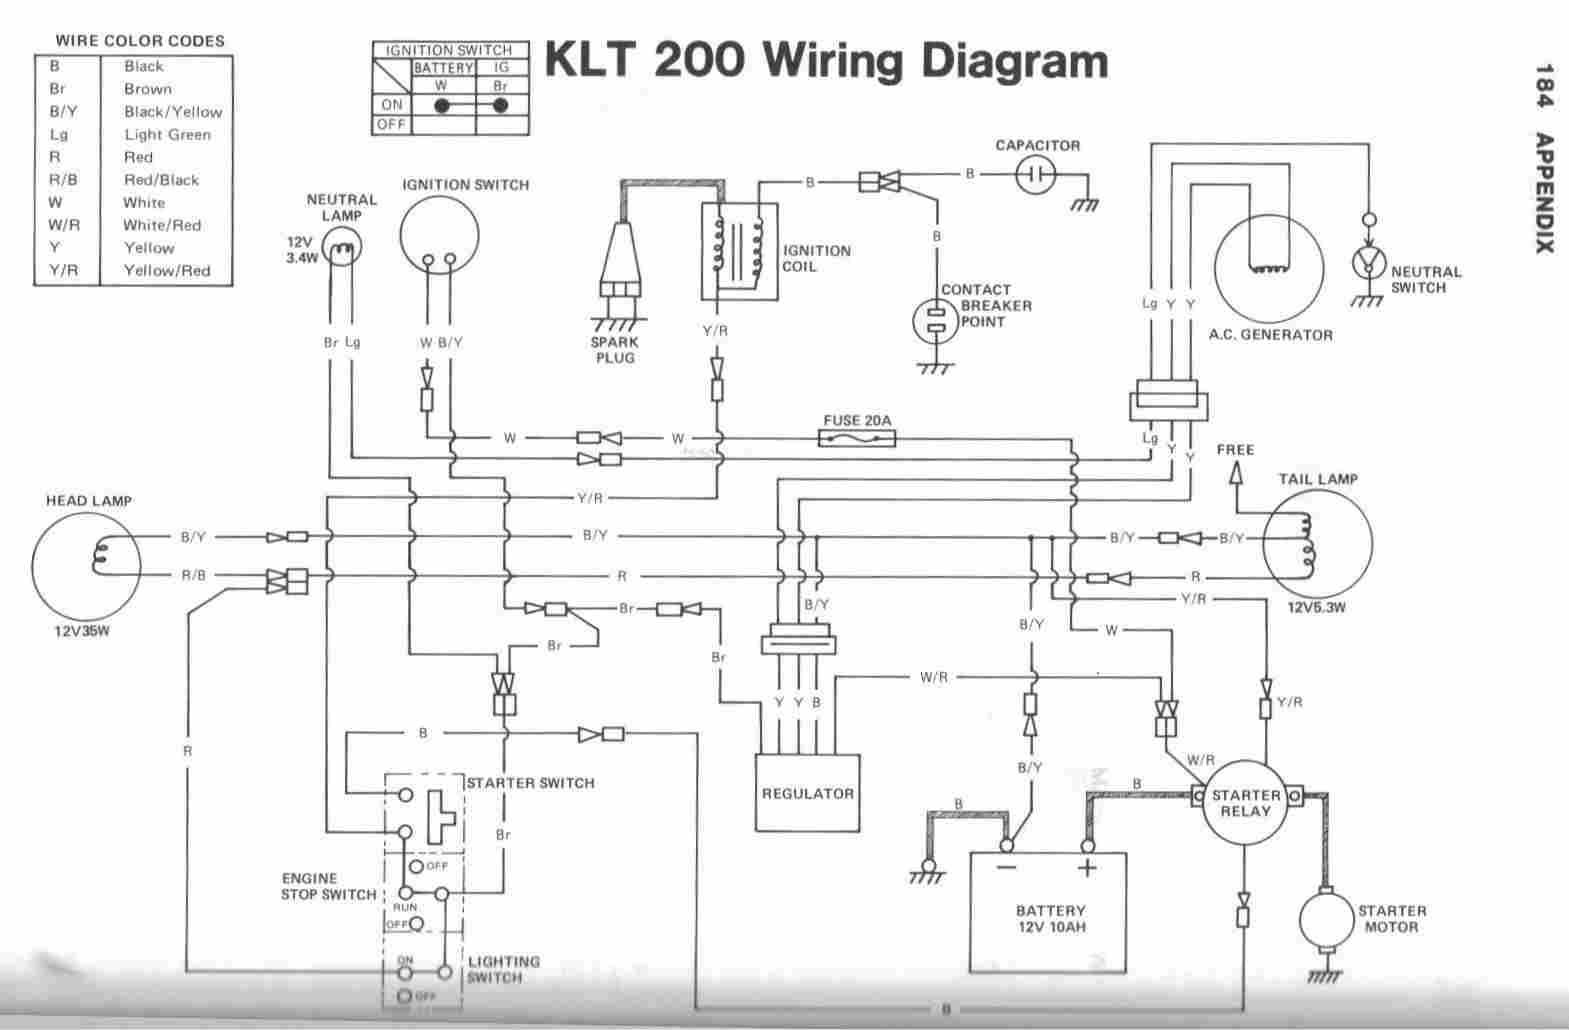 Home Ac Wiring Diagram : Residential electrical wiring diagrams pdf easy routing